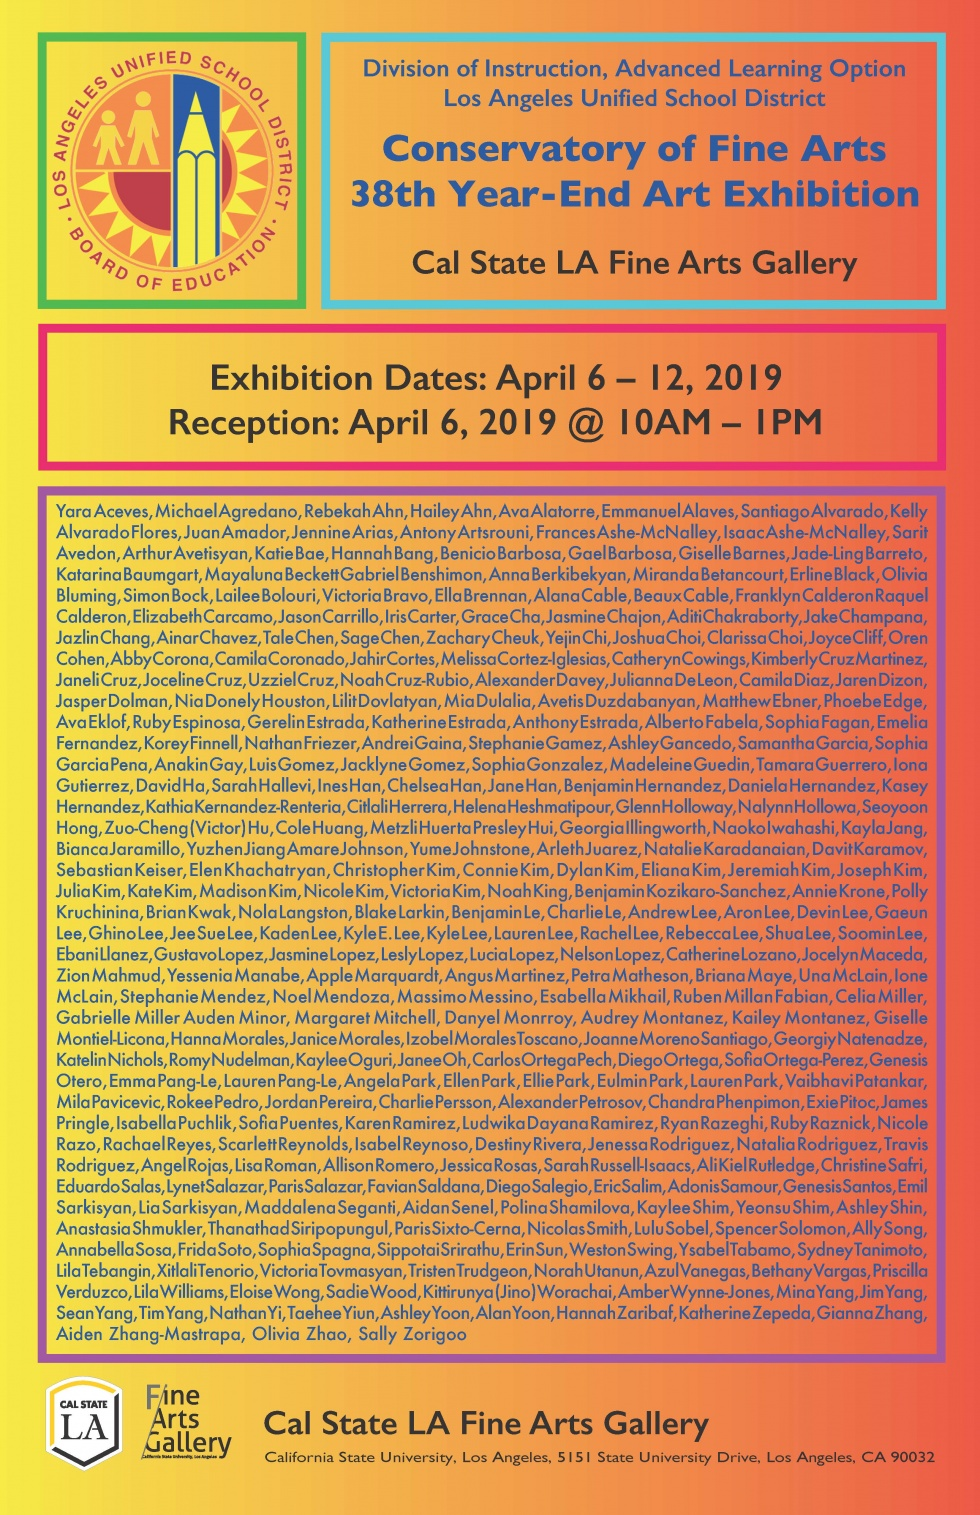 LAUSD 38th Children's Exhibition